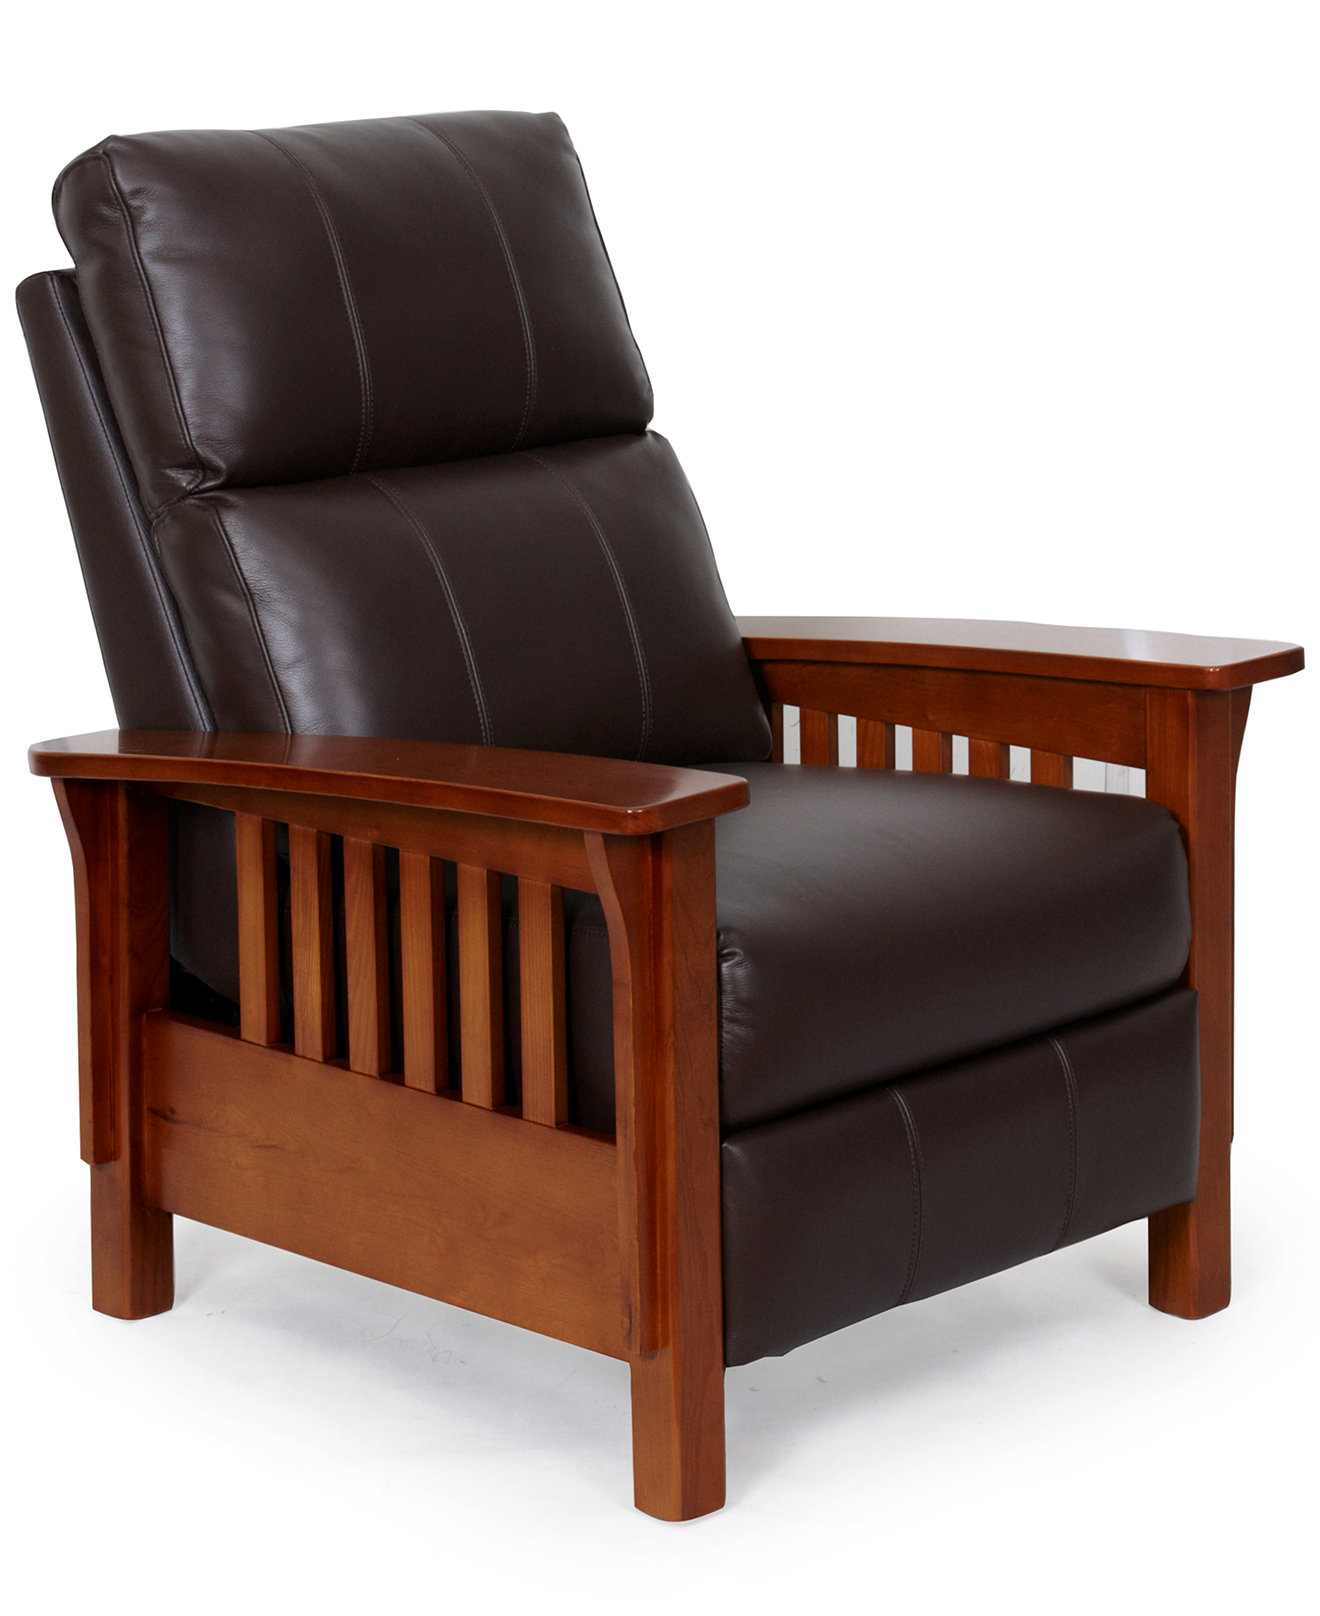 Reviewing The Best High End Recliners Best Recliner